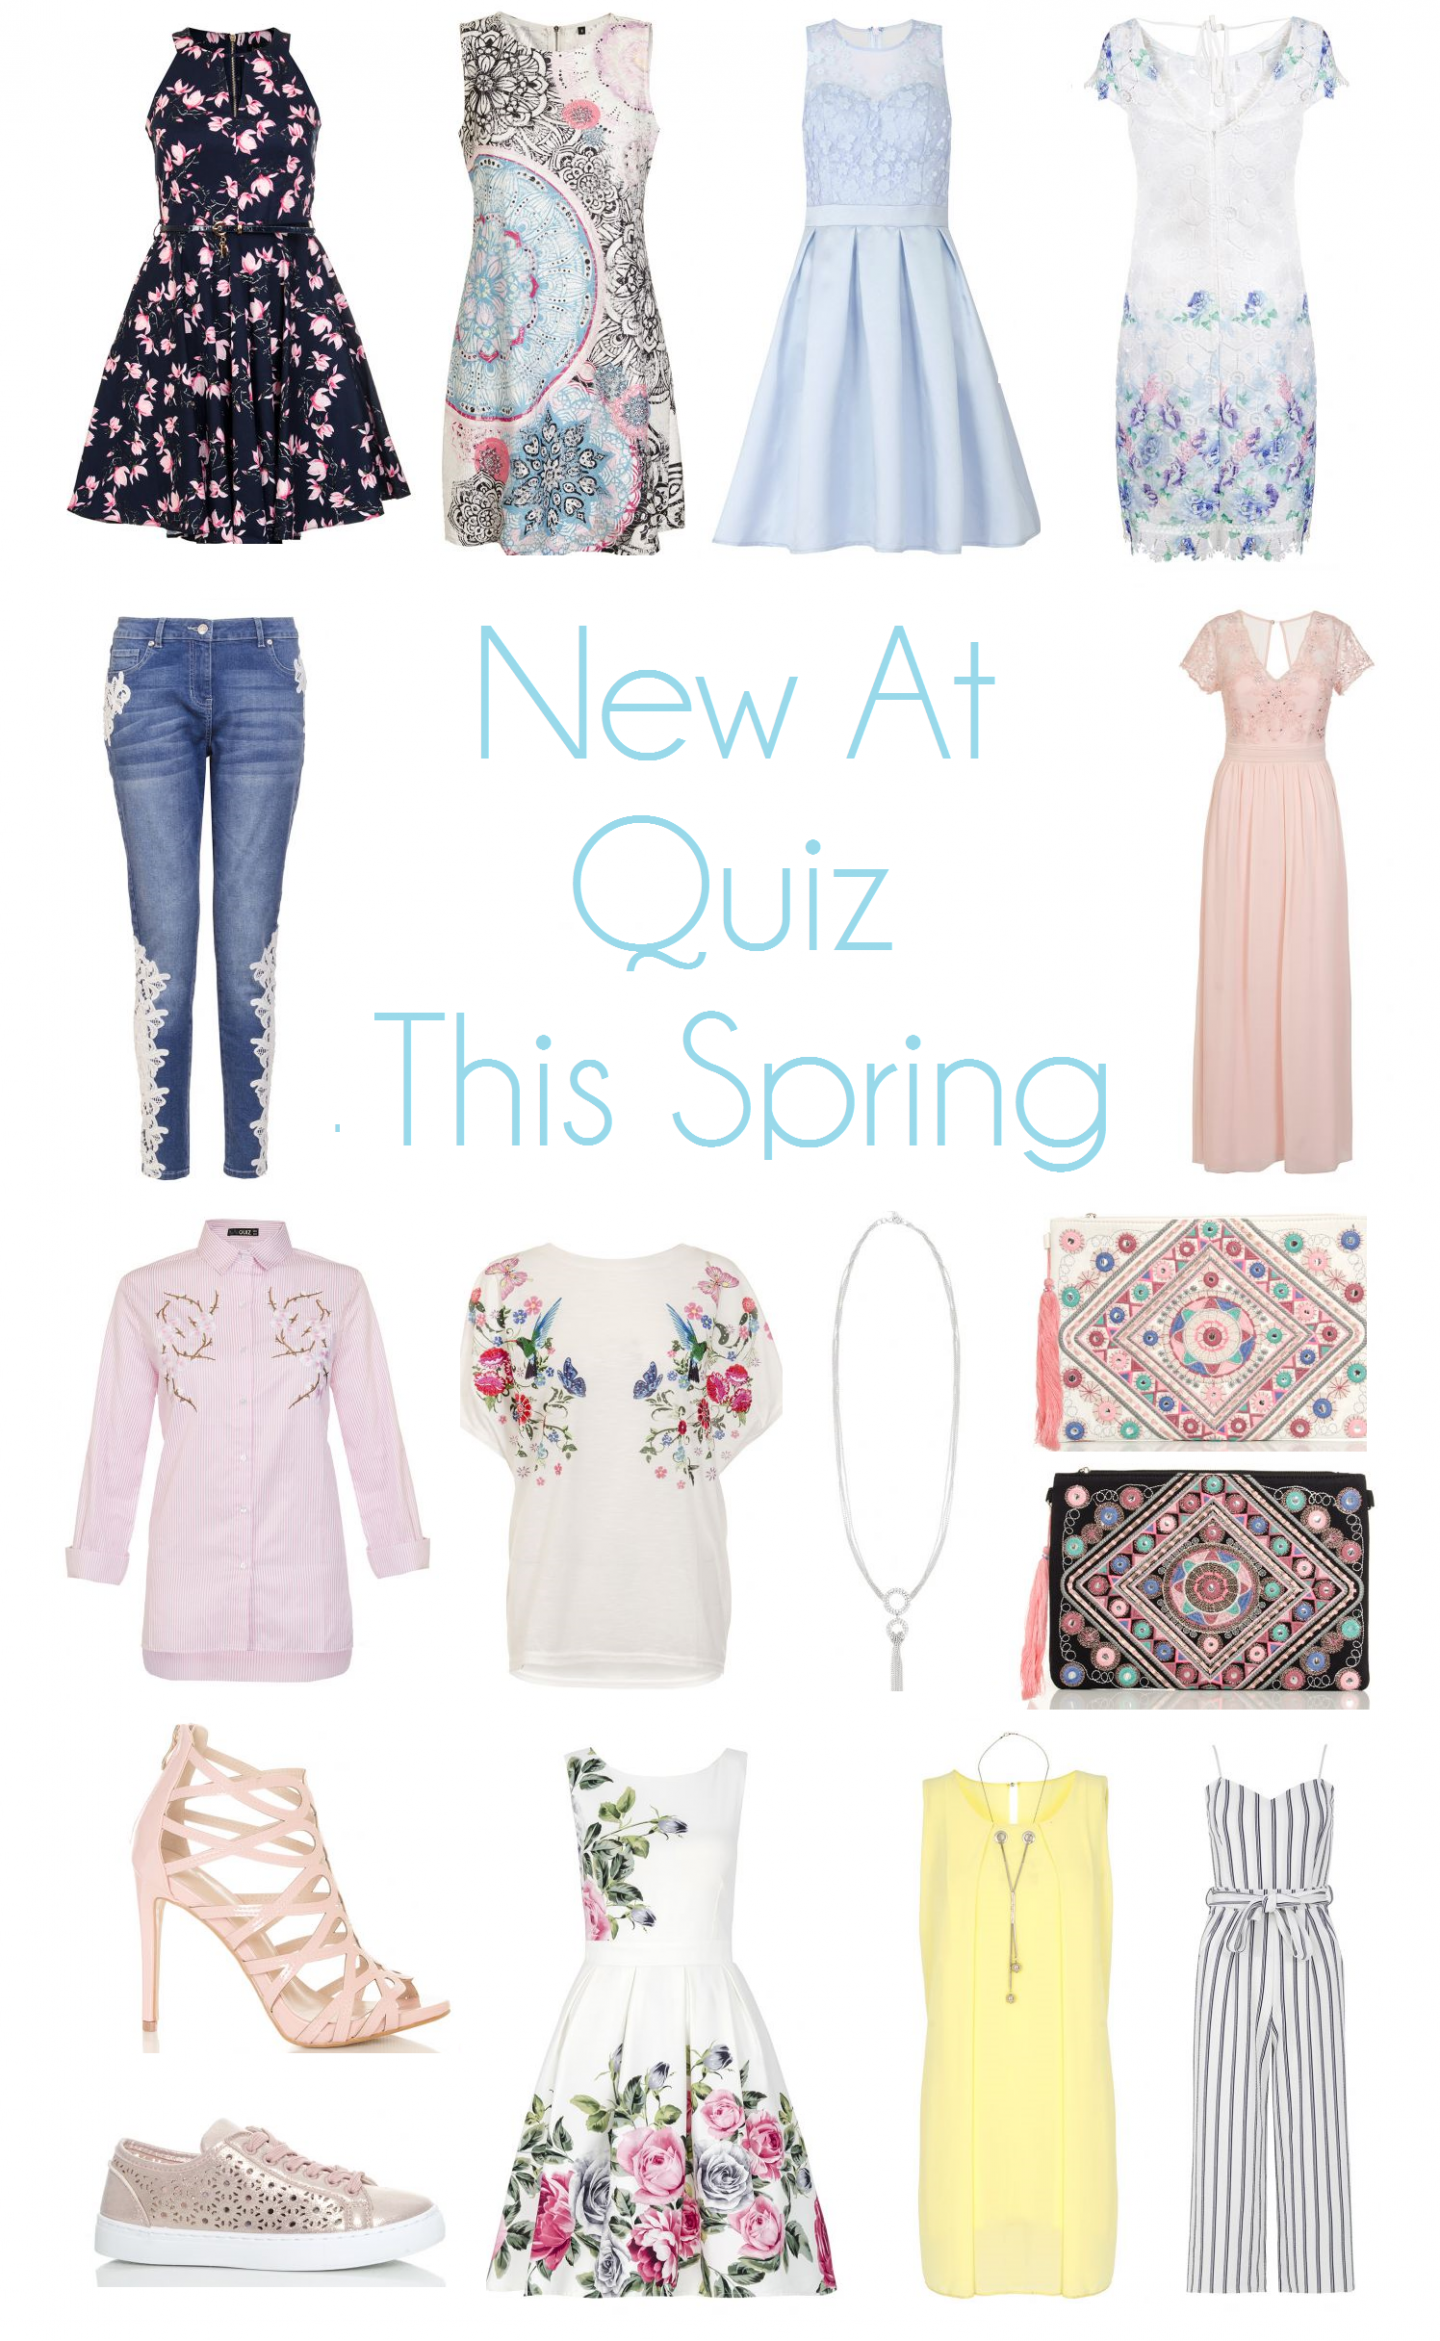 New at Quiz this Spring